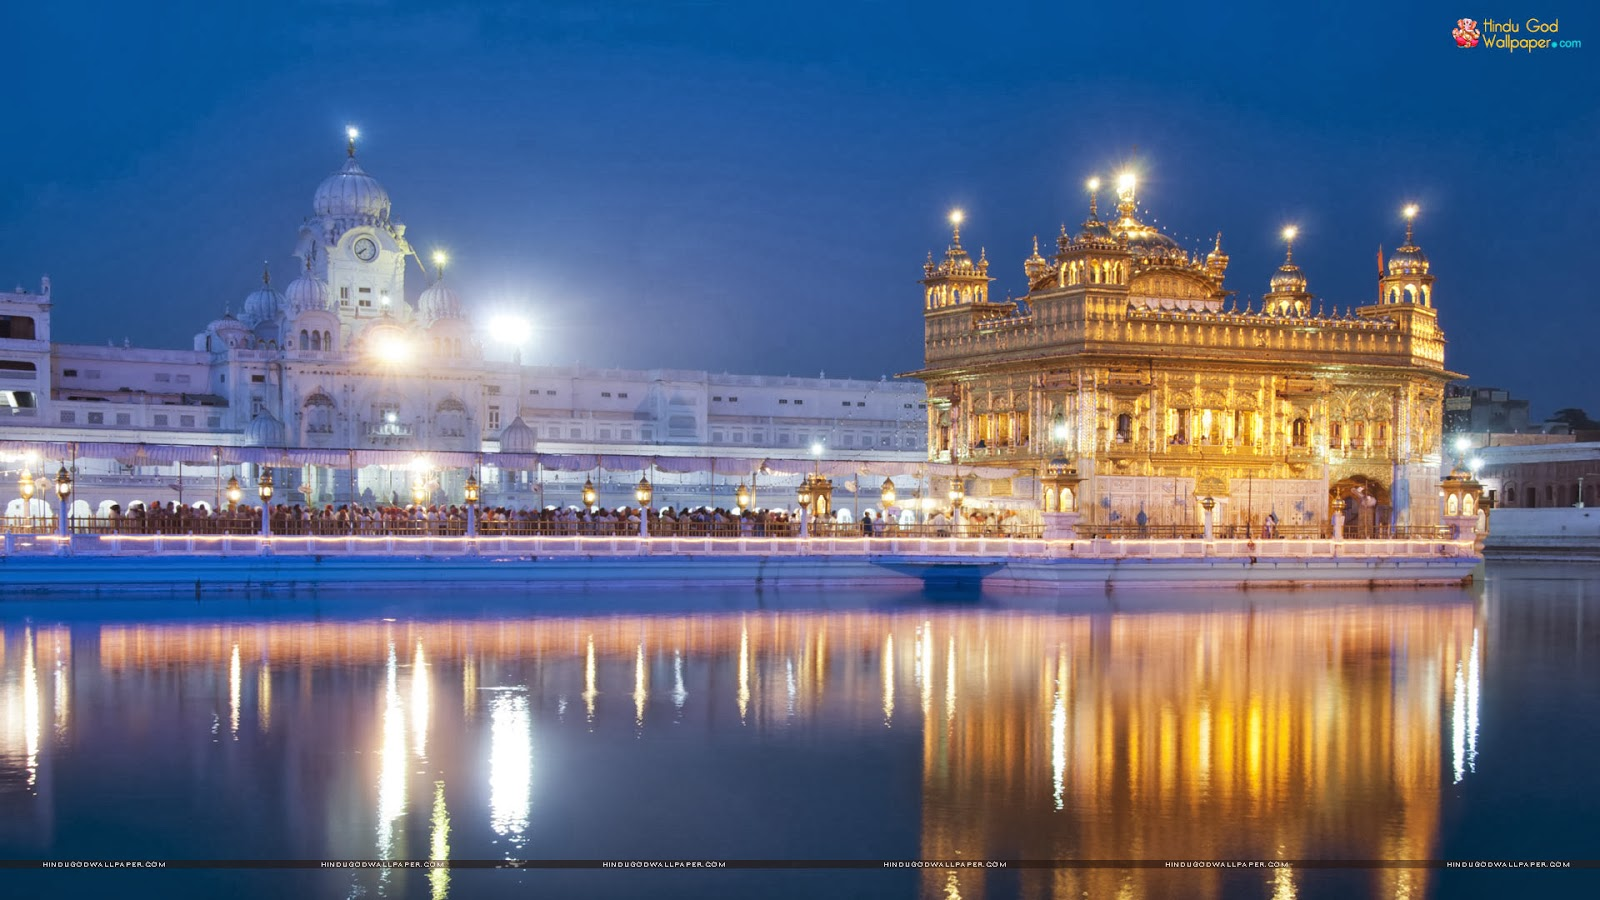 Hd Diwali Wallpapers Free Golden Temple Hindu God Wallpapers Download